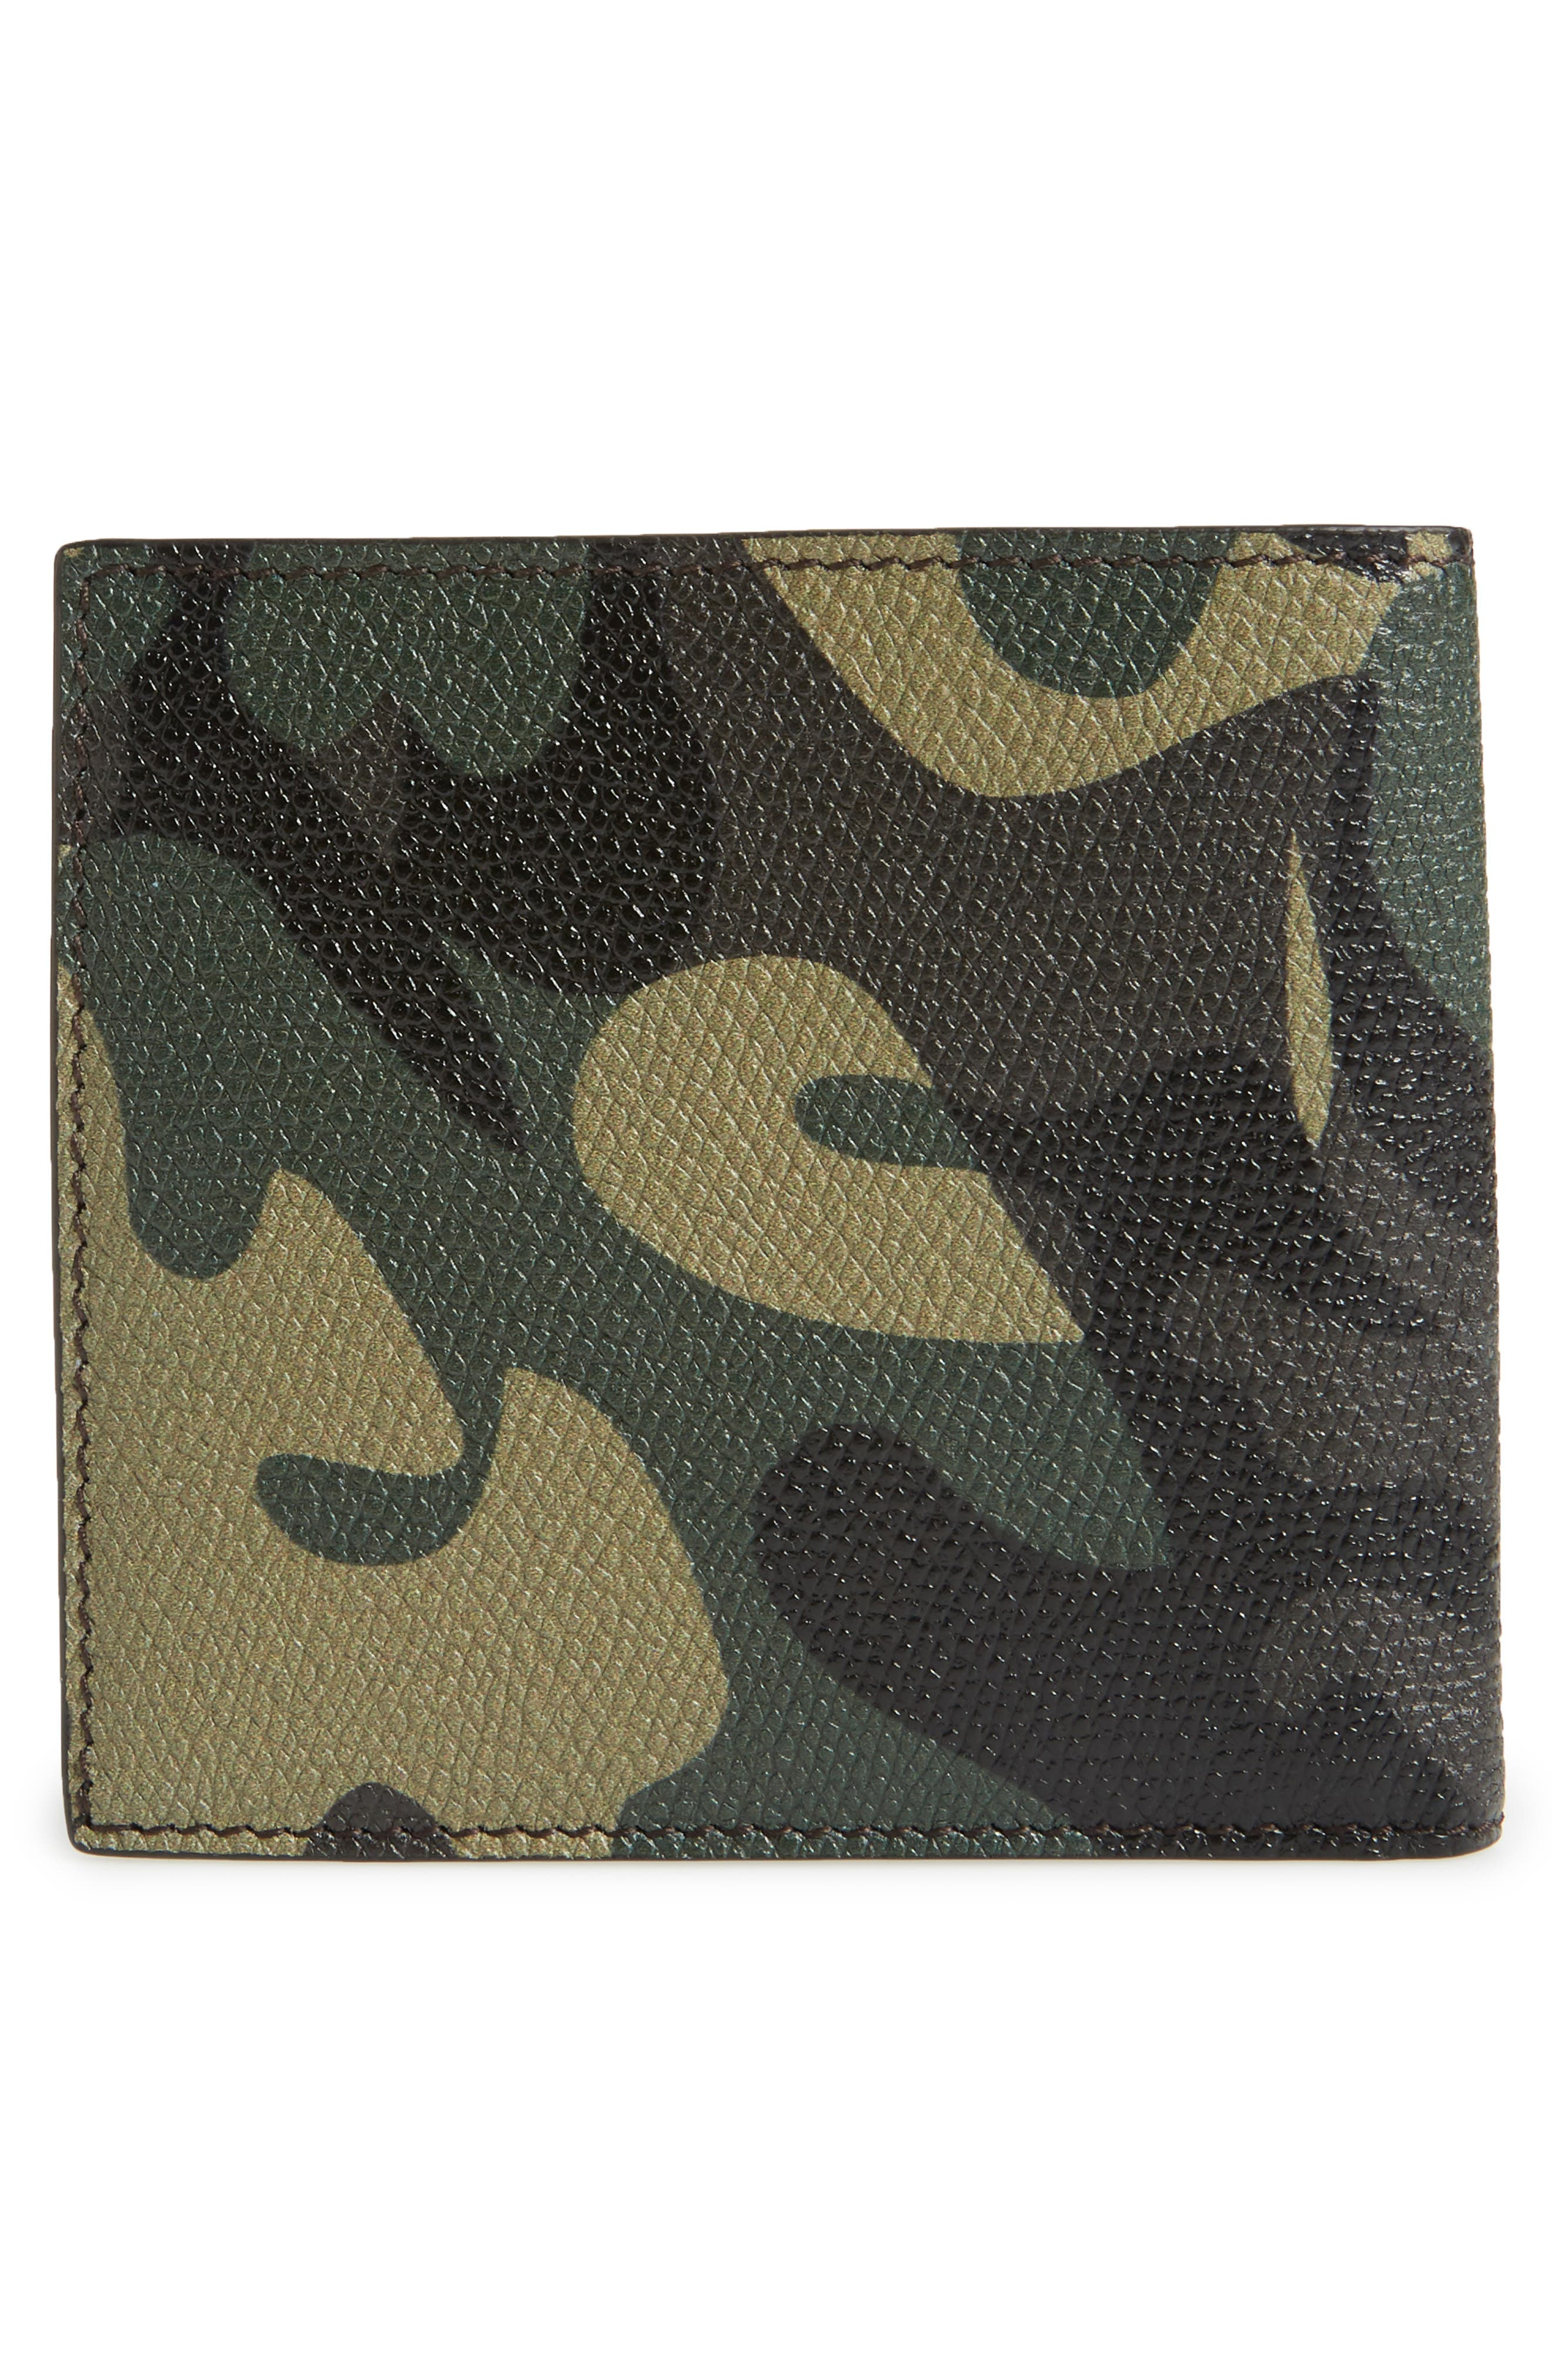 Camo Leather Billfold Wallet,                             Alternate thumbnail 3, color,                             009